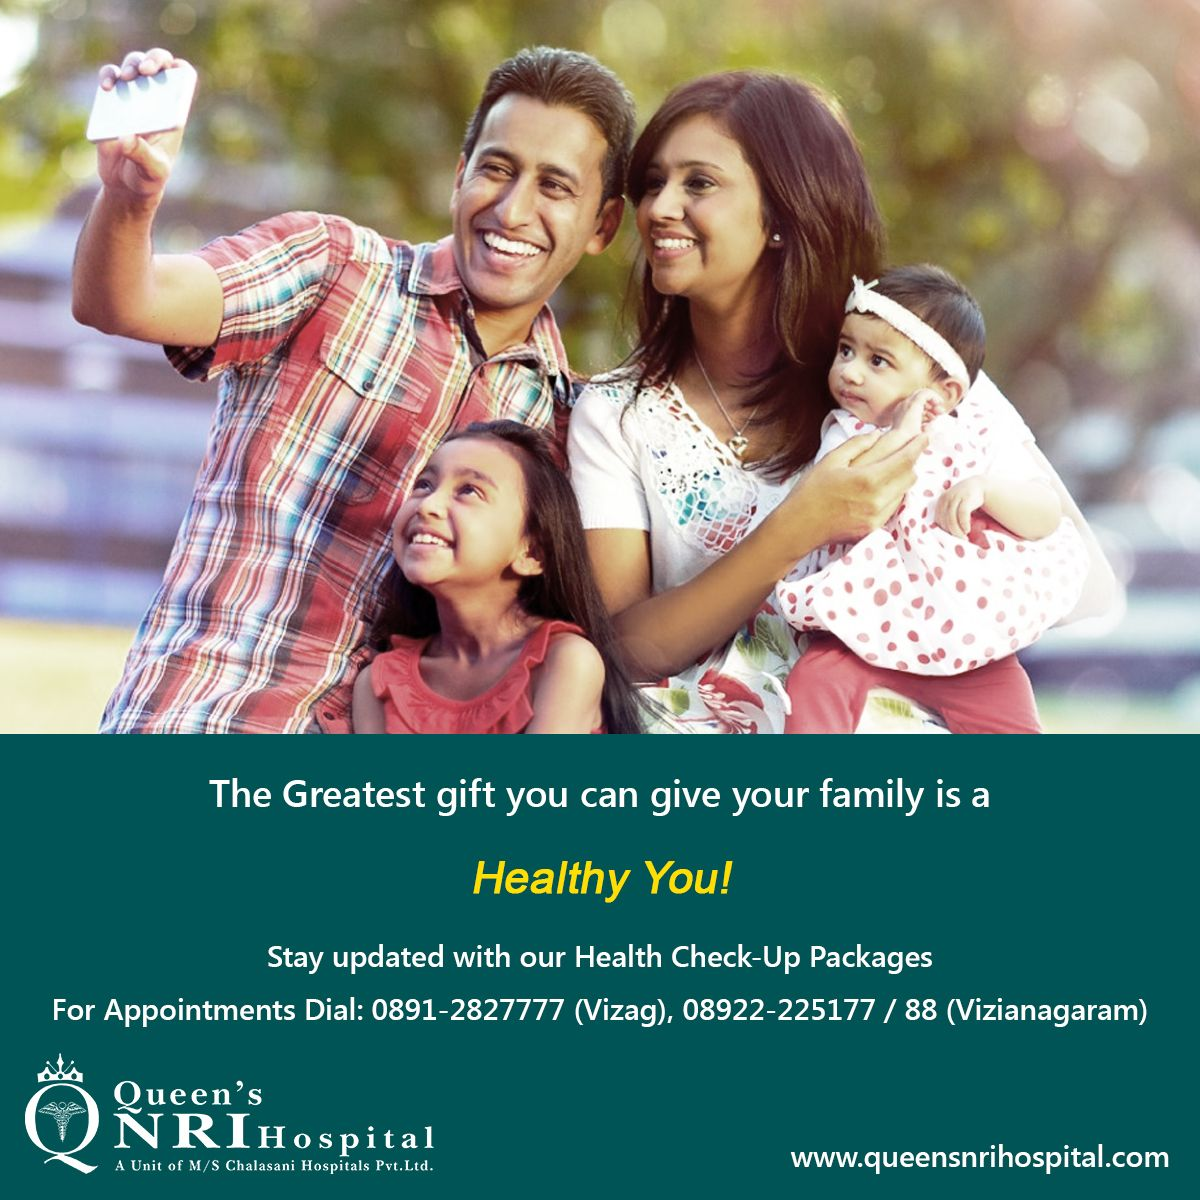 The greatest gift you can give your family is a HEALTHY